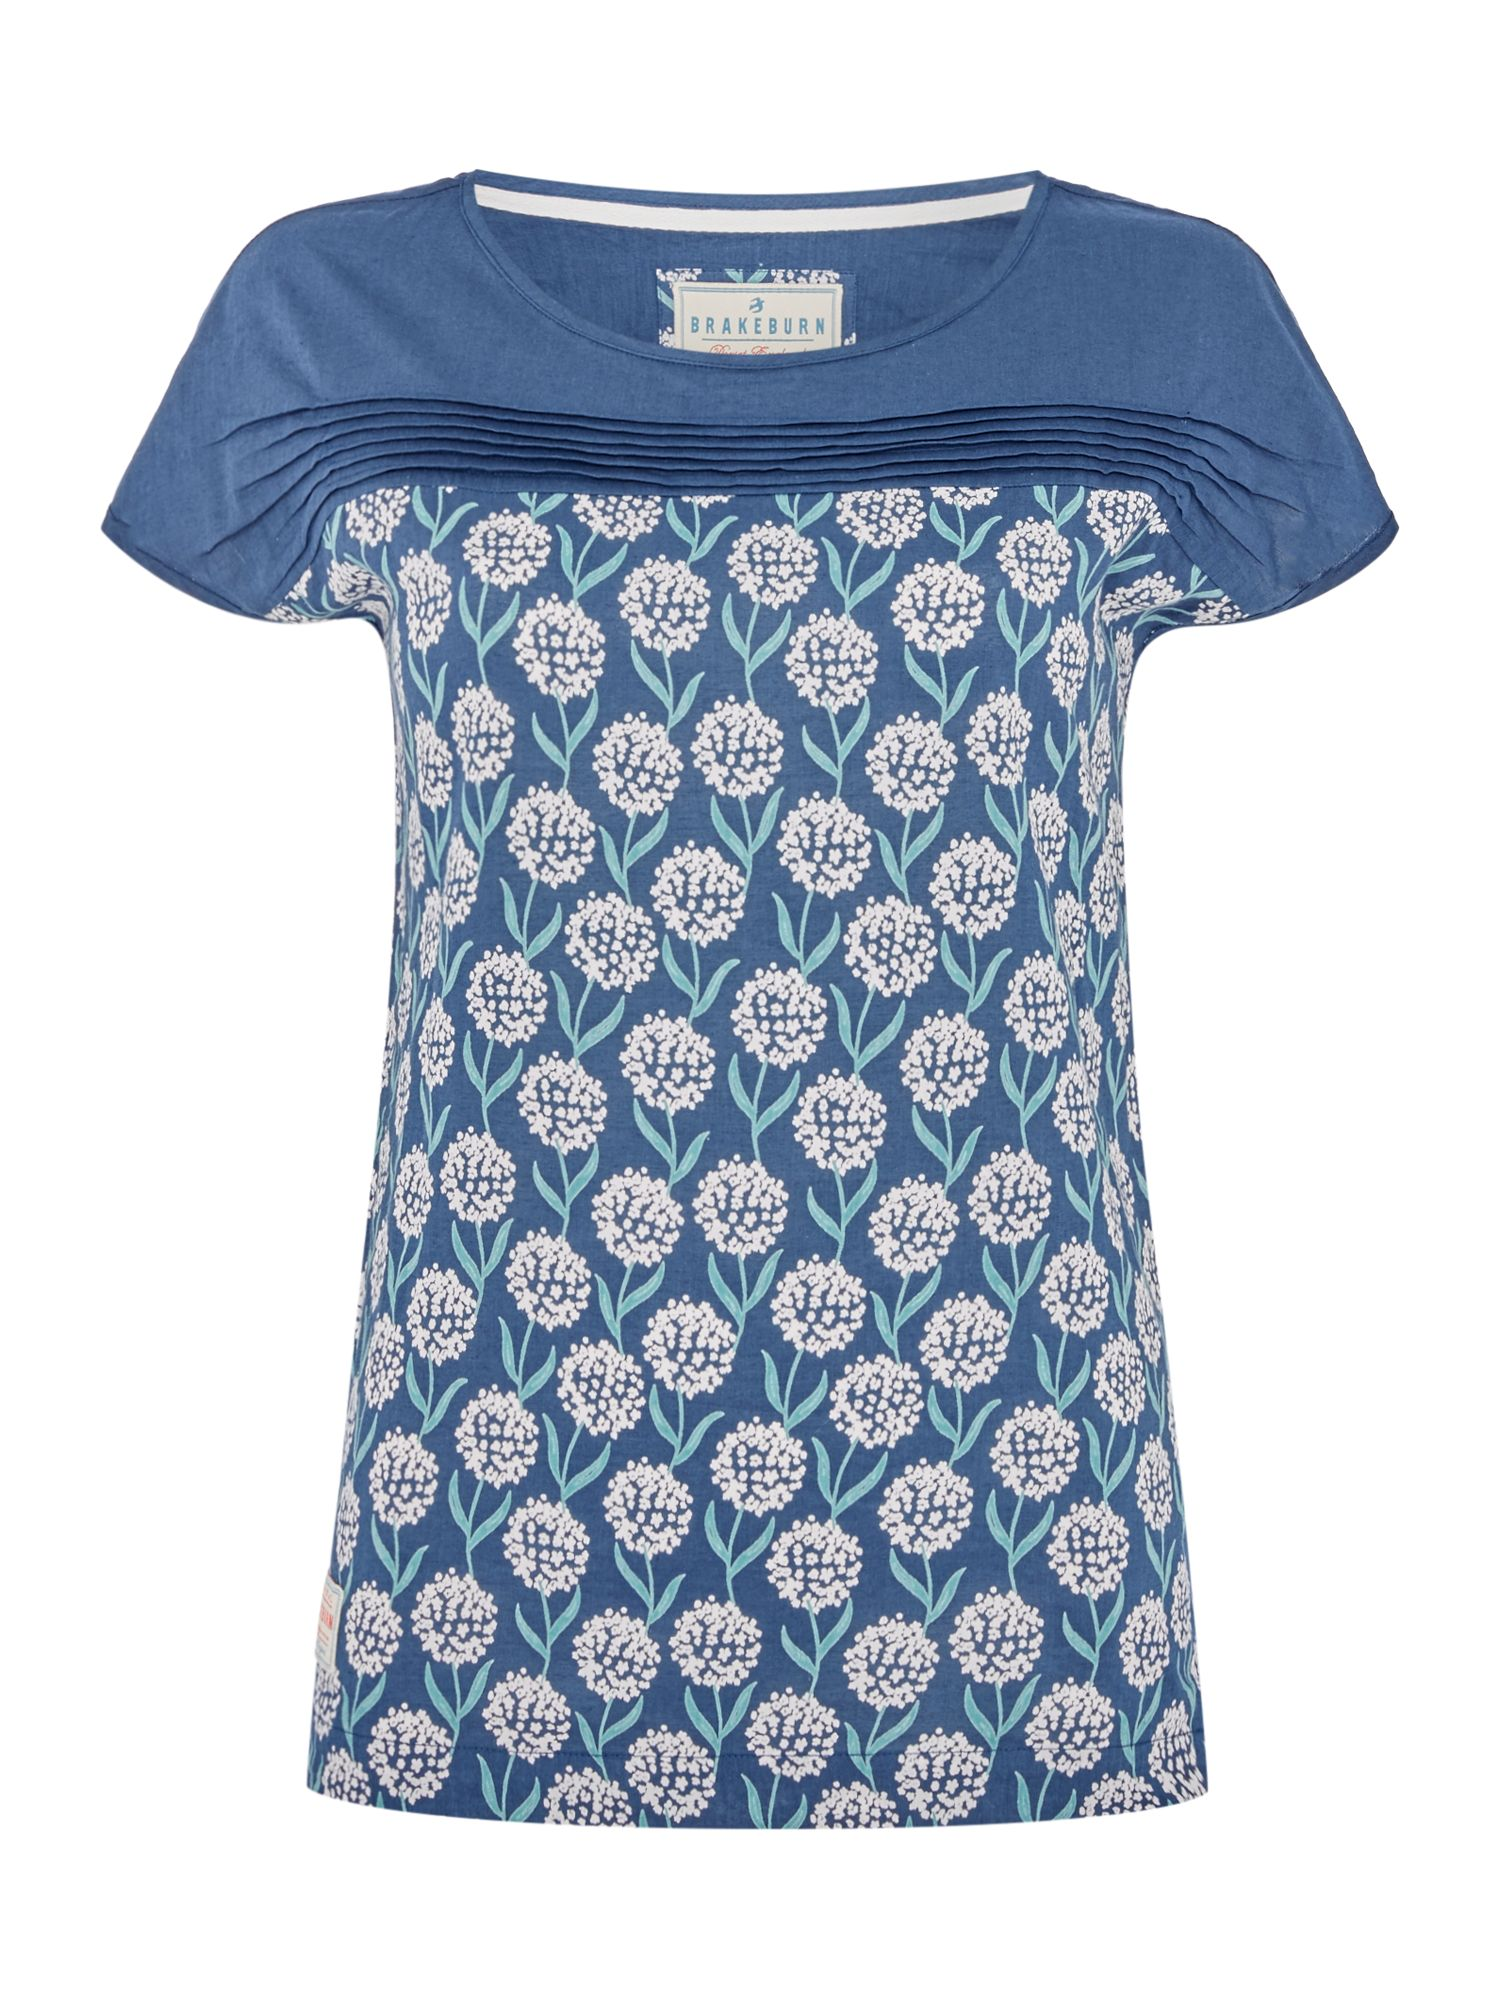 Brakeburn Flower Print Short Sleeve Crew Neck Tee, Blue